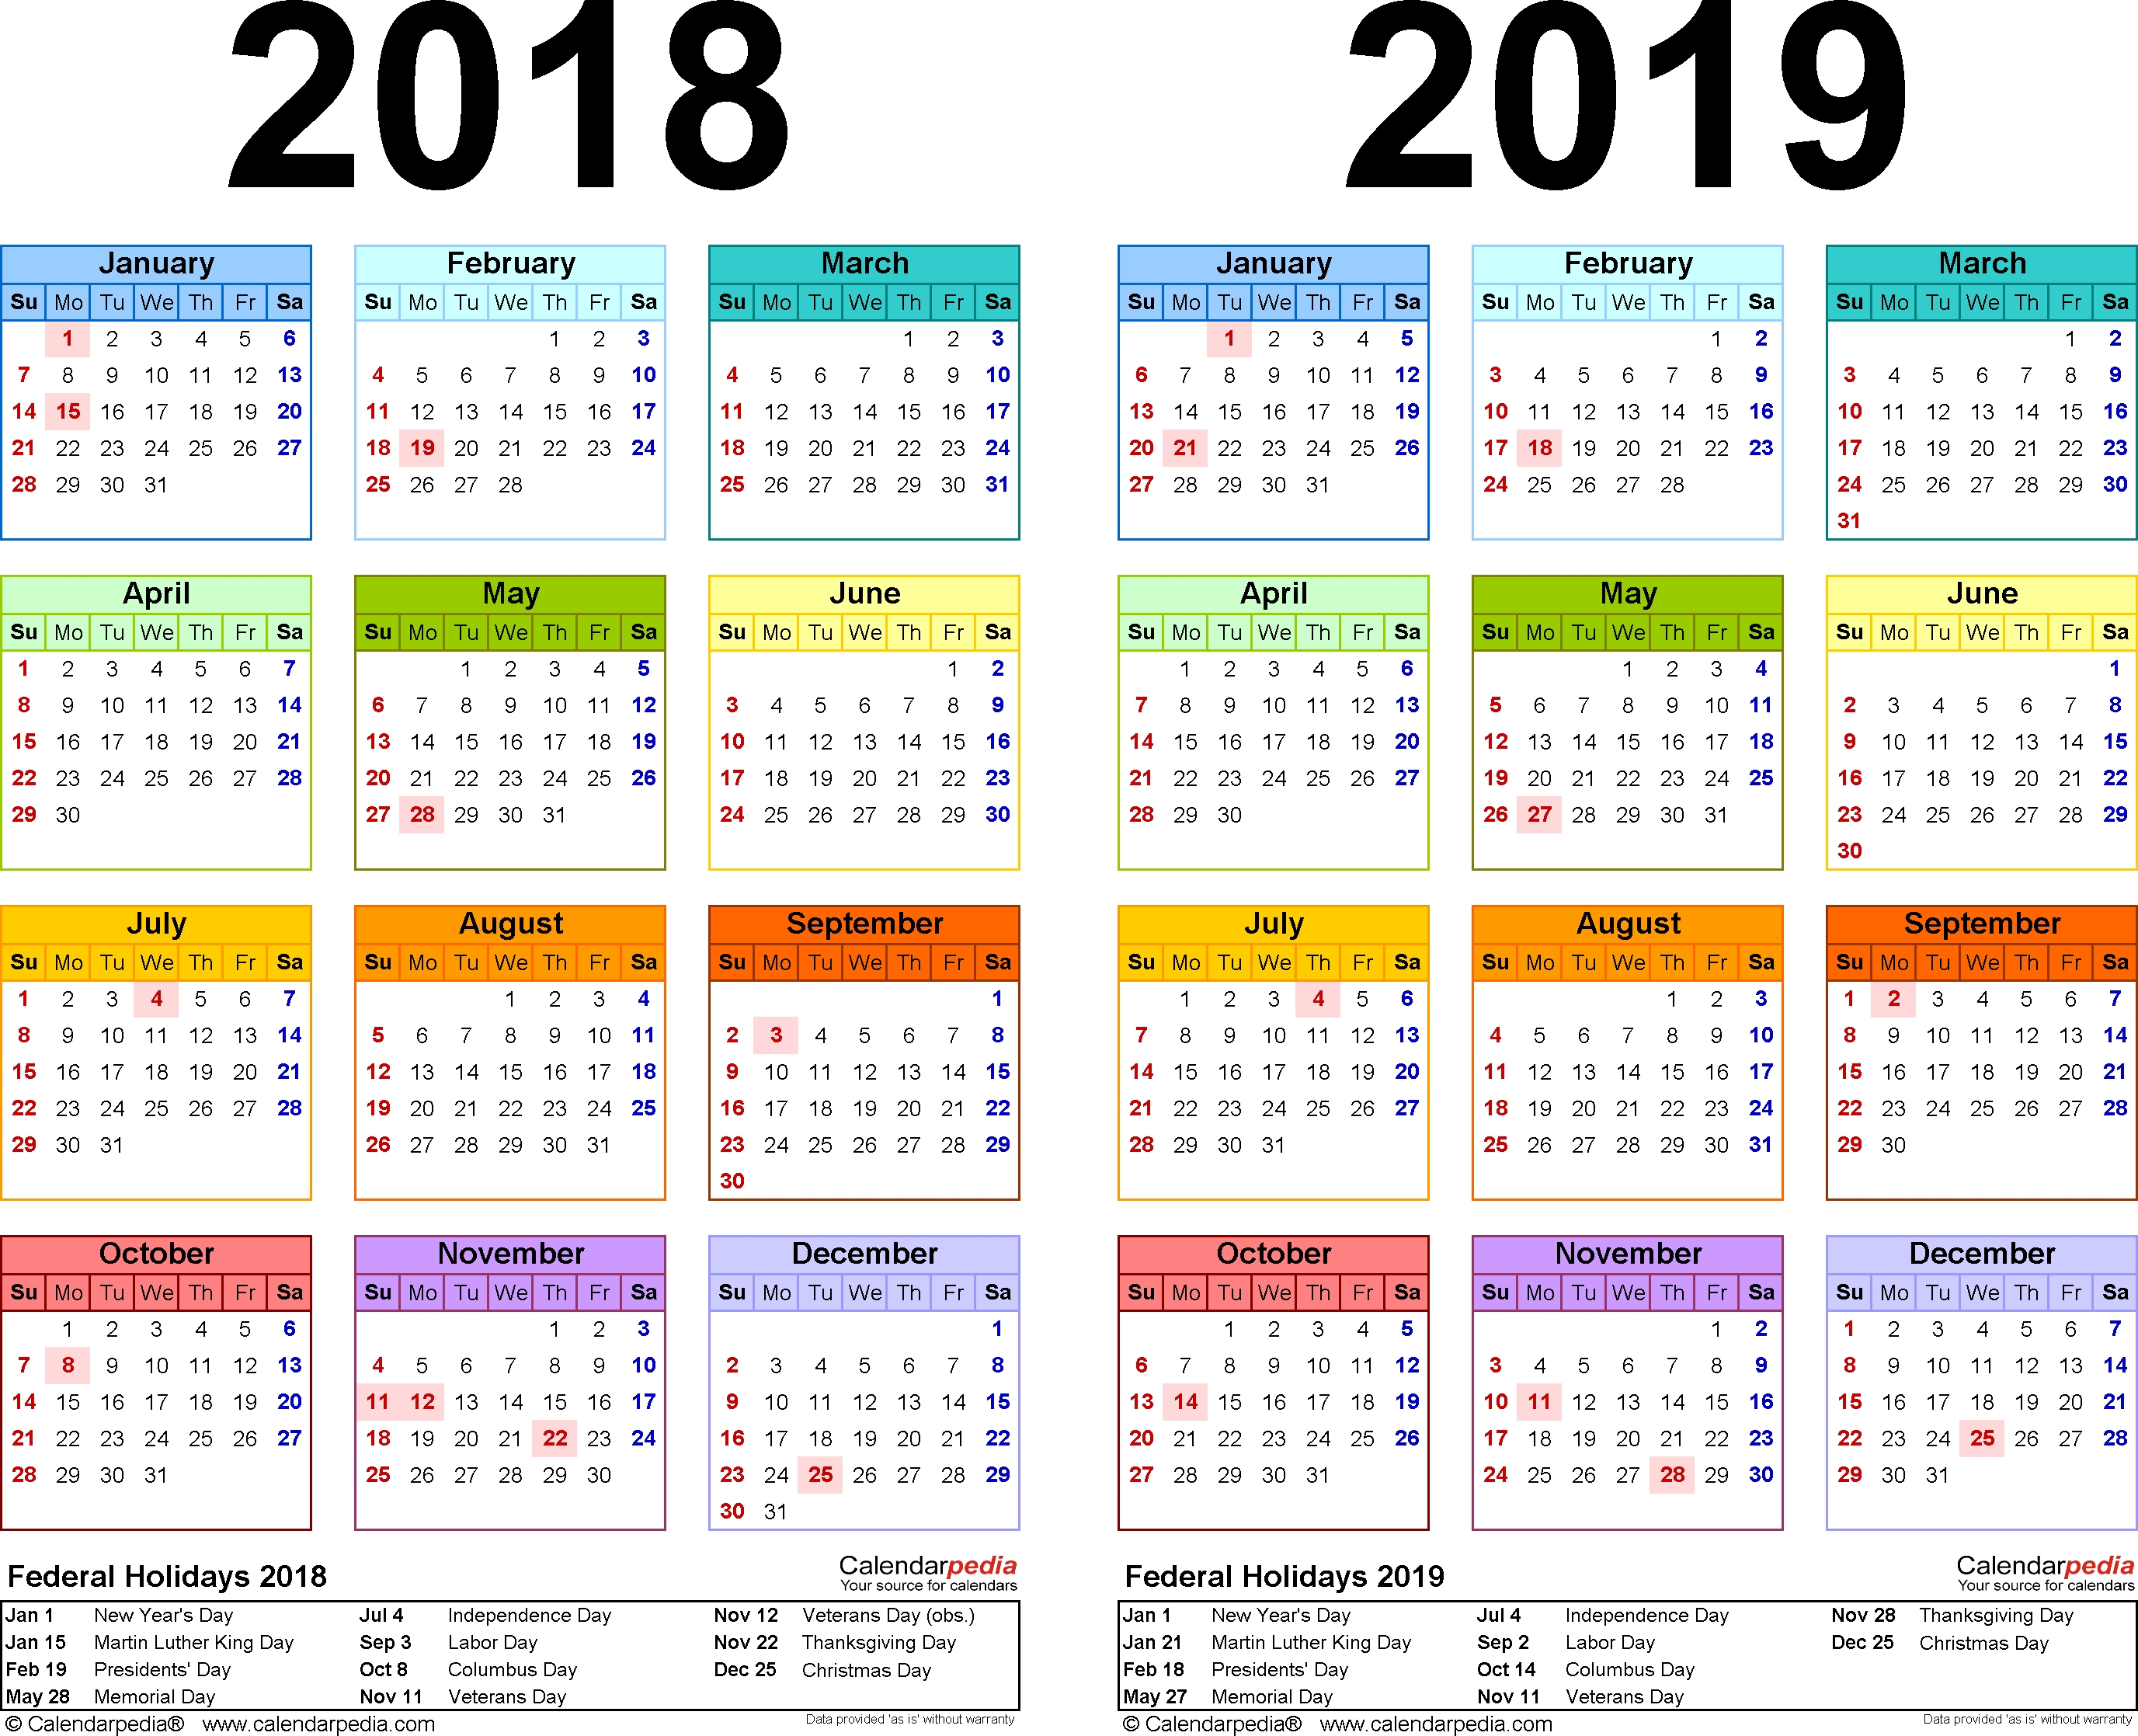 2018-2019 Calendar - Free Printable Two-Year Word Calendars for Printable Year Calendar 2019 - 2020 With Space To Write